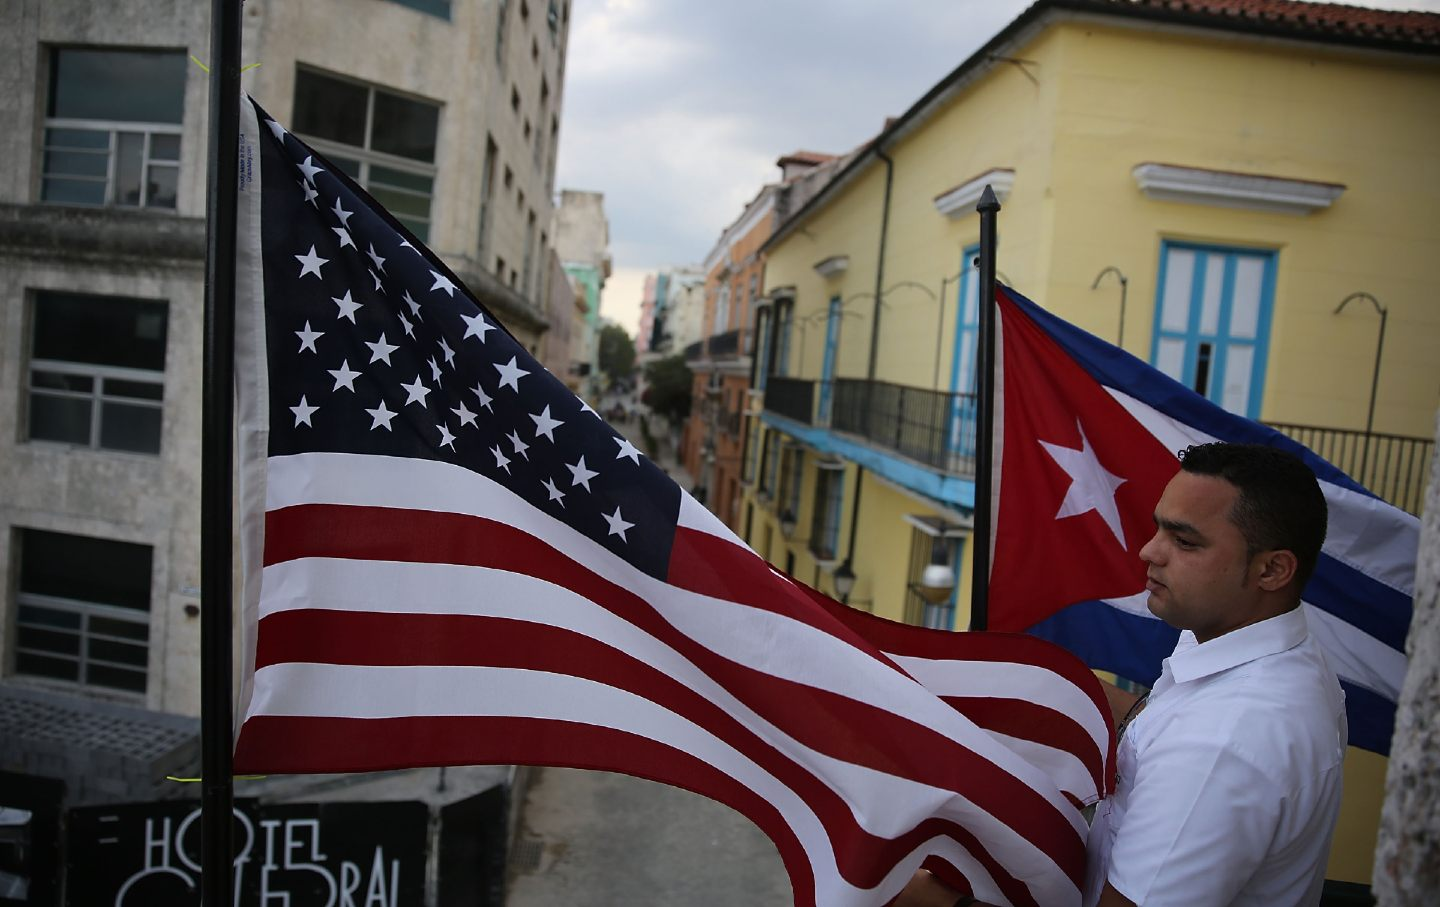 Jose Alfredo stands between an American flag and a Cuban flag